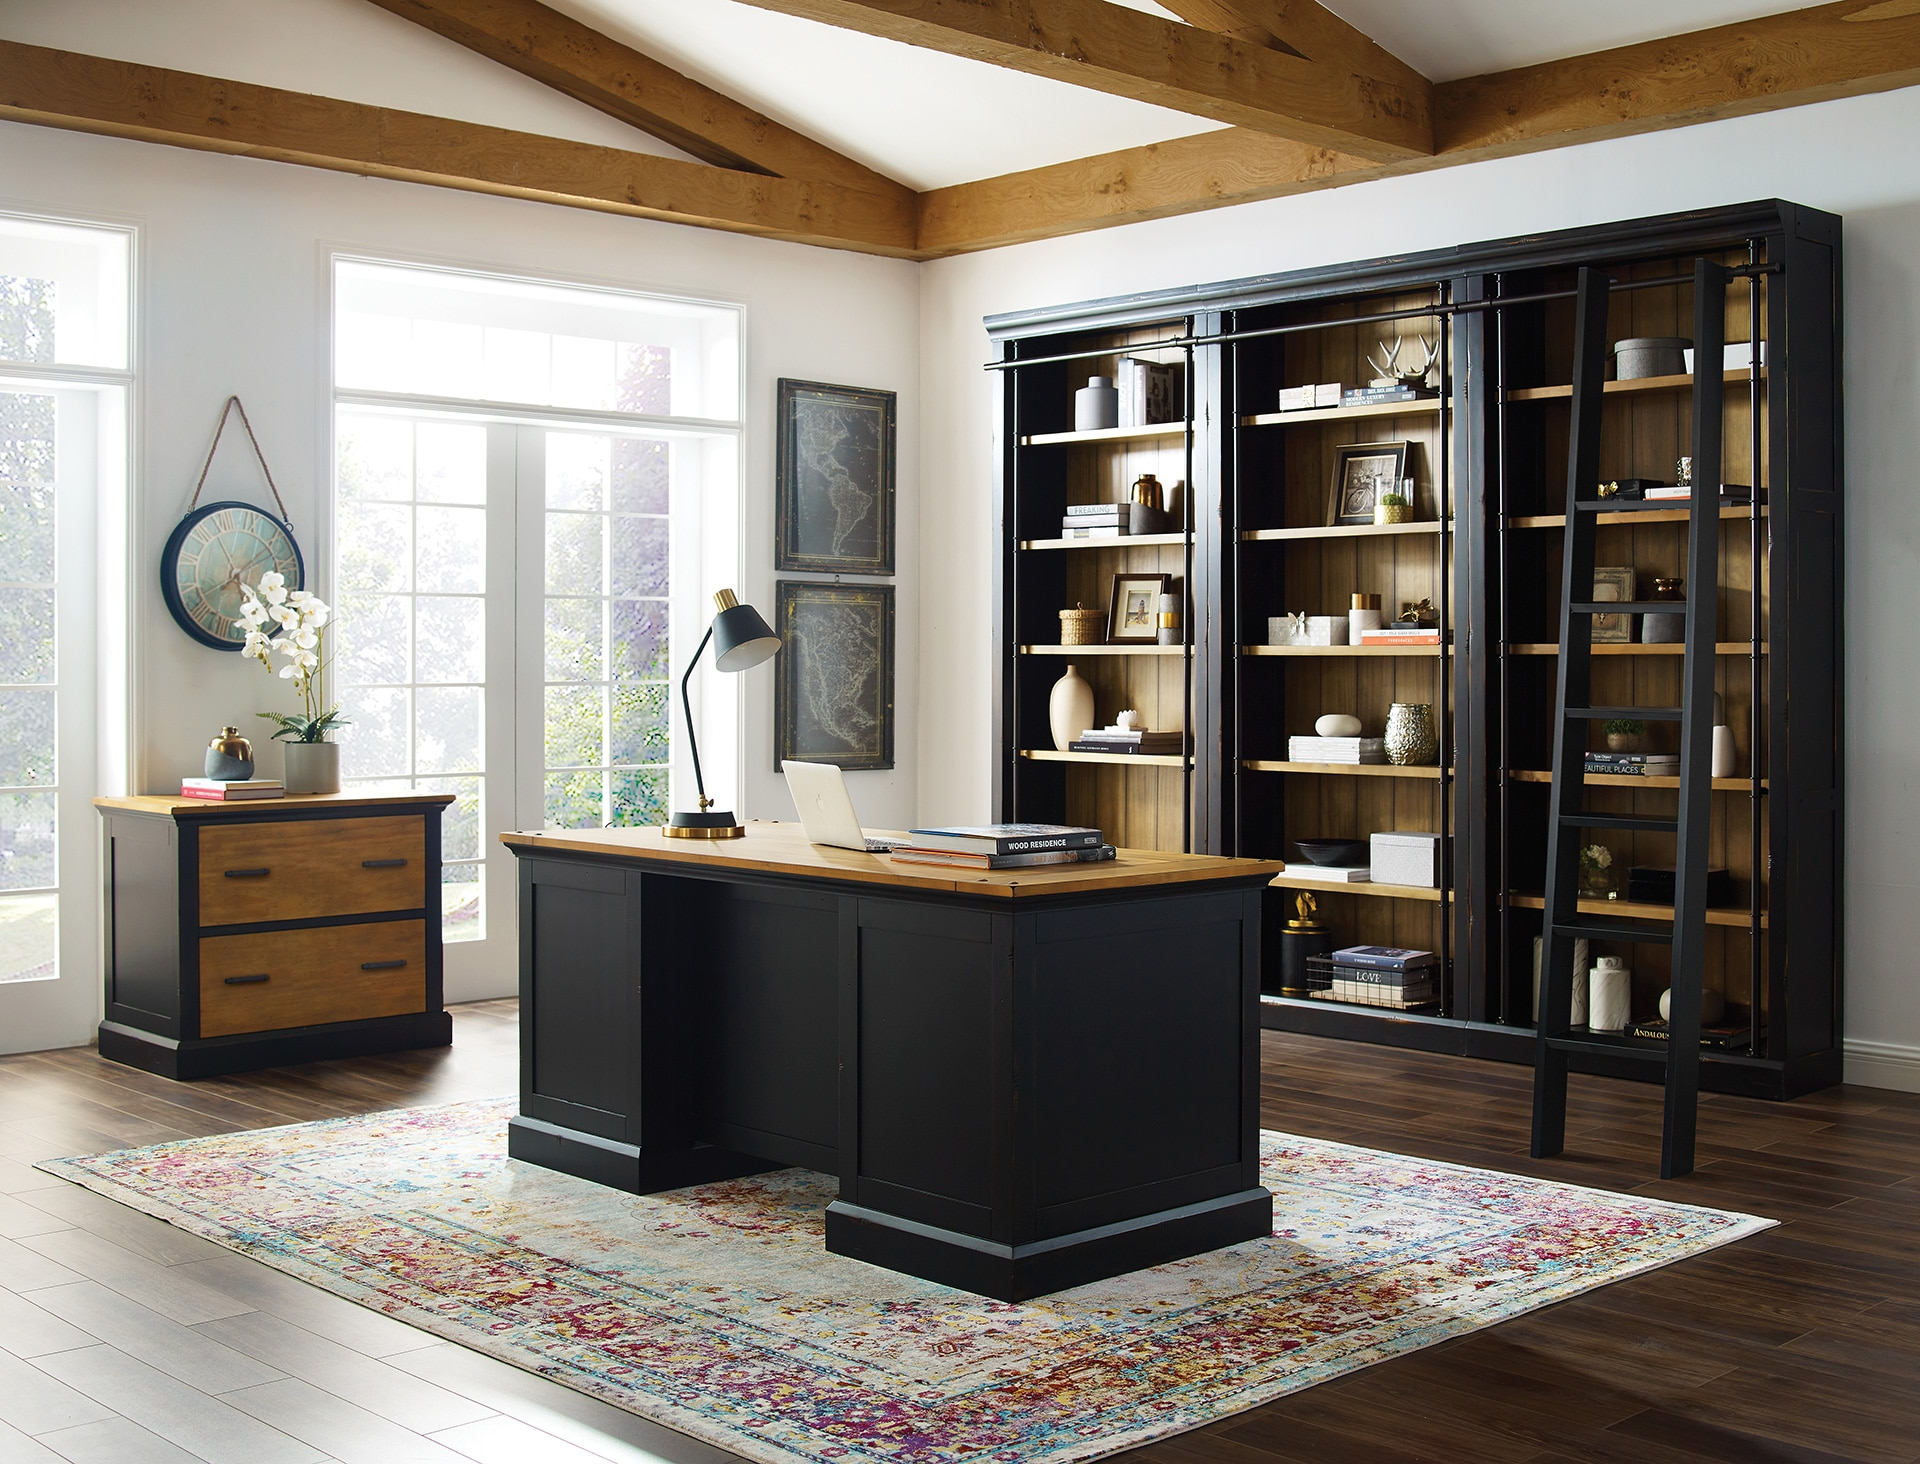 Martin Furniture Martin Furniture Is The Leading Manufacturer Of Office Furniture Entertainment Centers And Occasional Tables